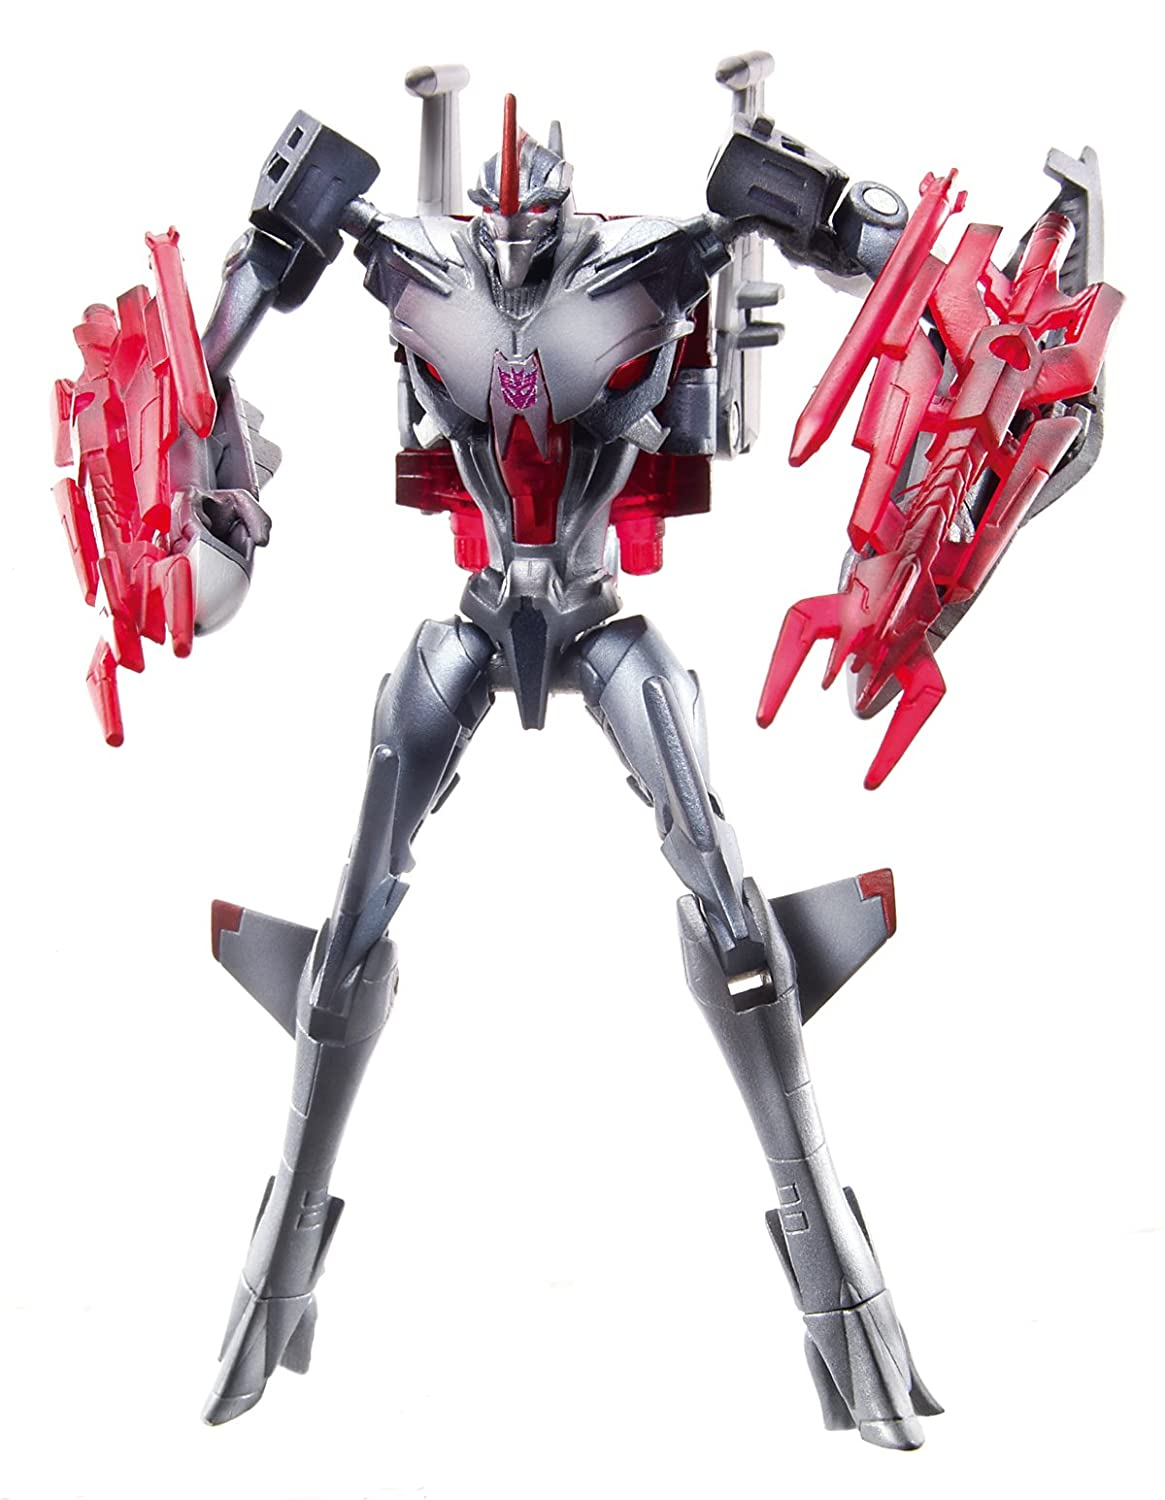 EZ-03 Transformer Prime Starscream (PVC Figure) Takaratomy [JAPAN] (japan import)